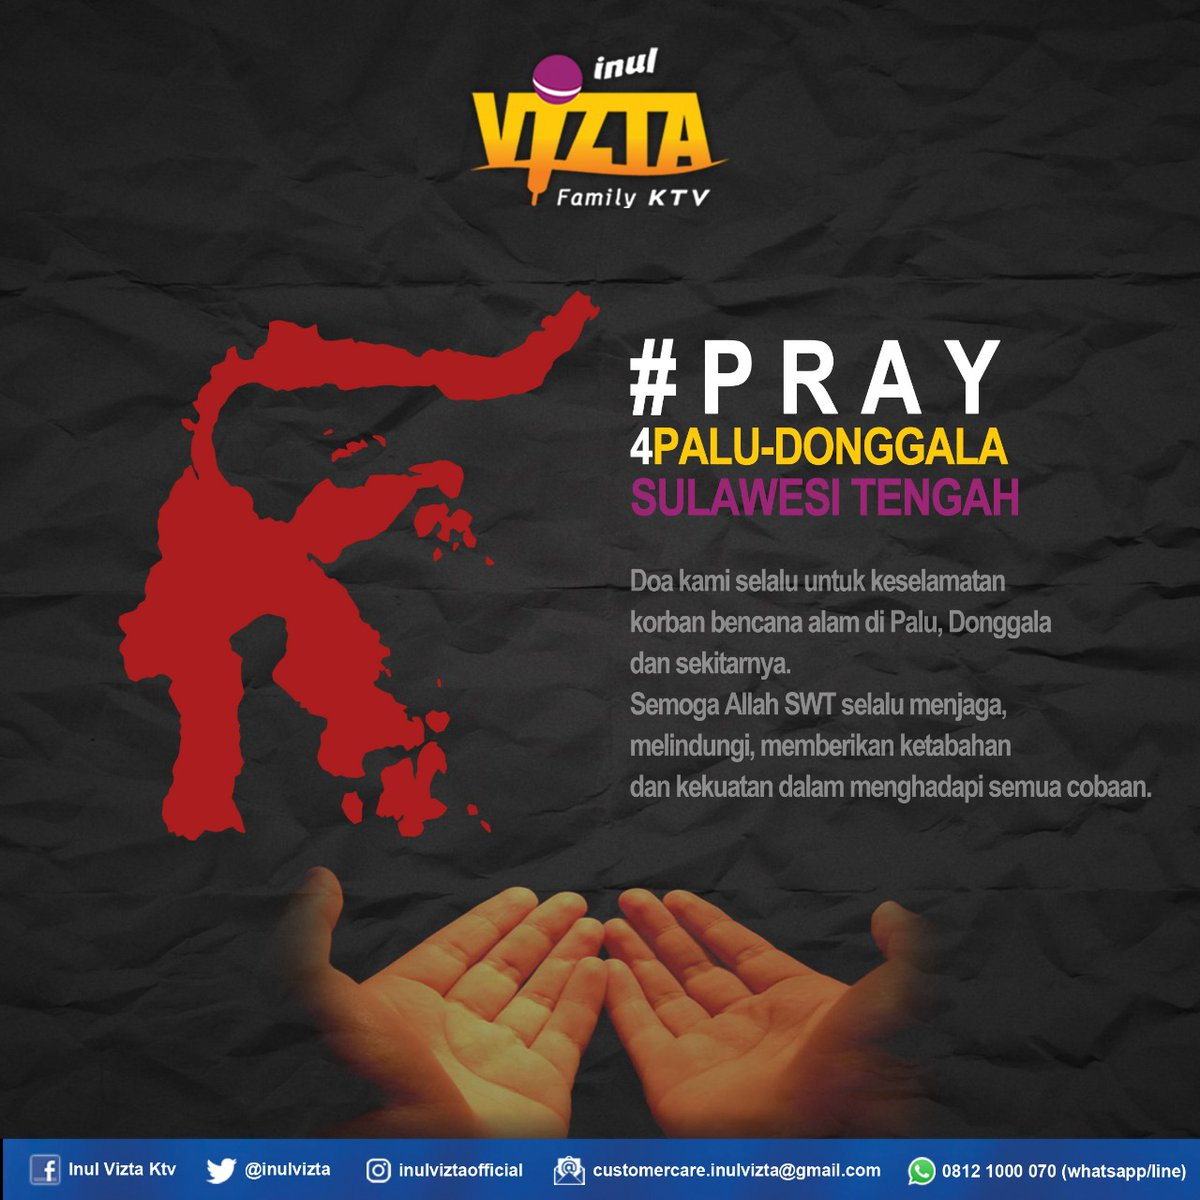 PRAY FOR PALU-DONGGALA